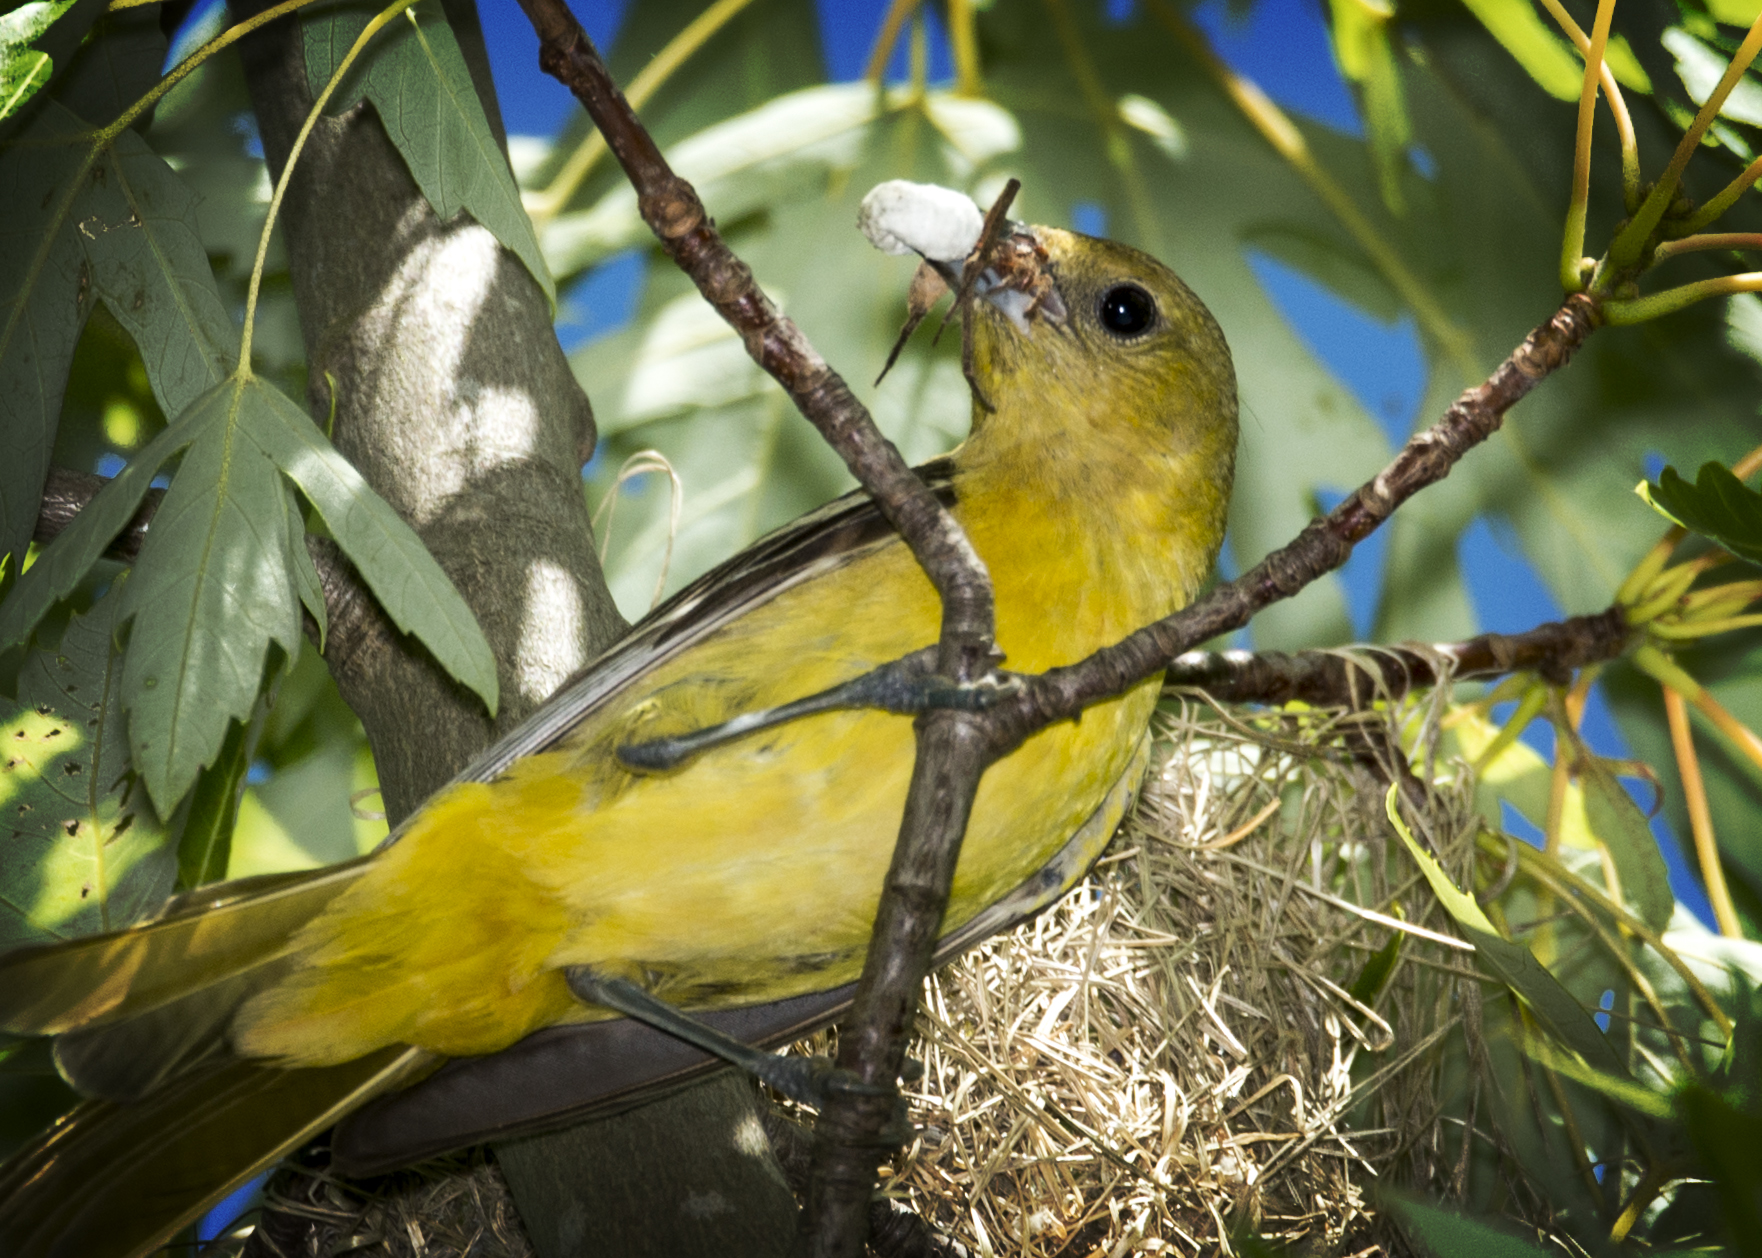 The female Orchard Oriole scoping me out. She was just bringing some new insects to the nest.